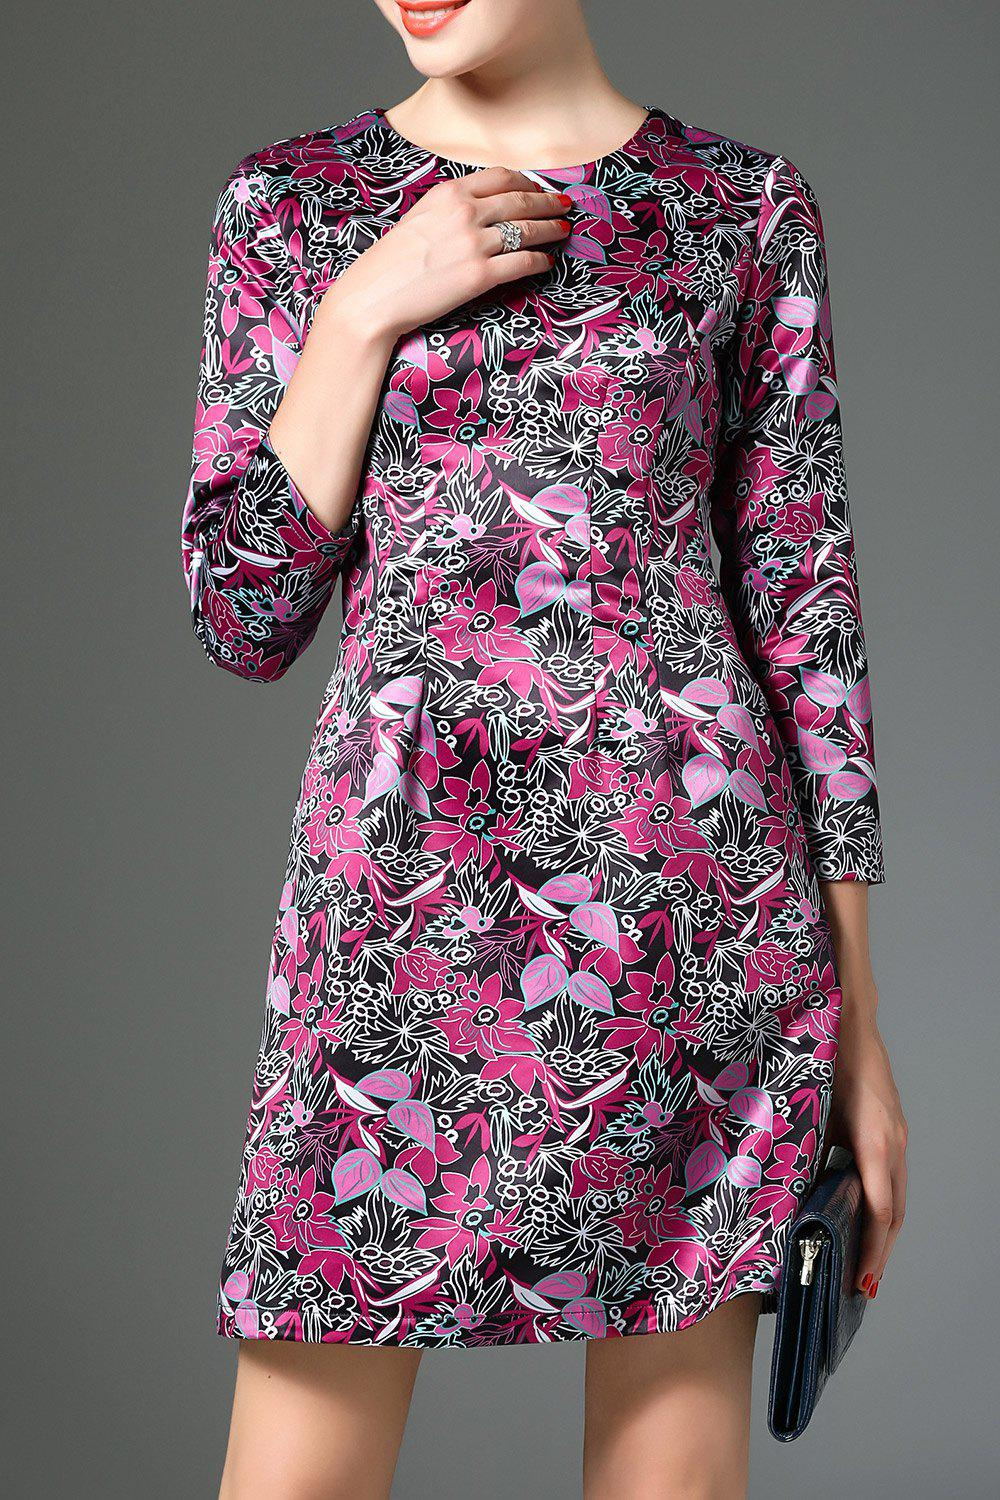 Fashion A Line Dress With Floral Print